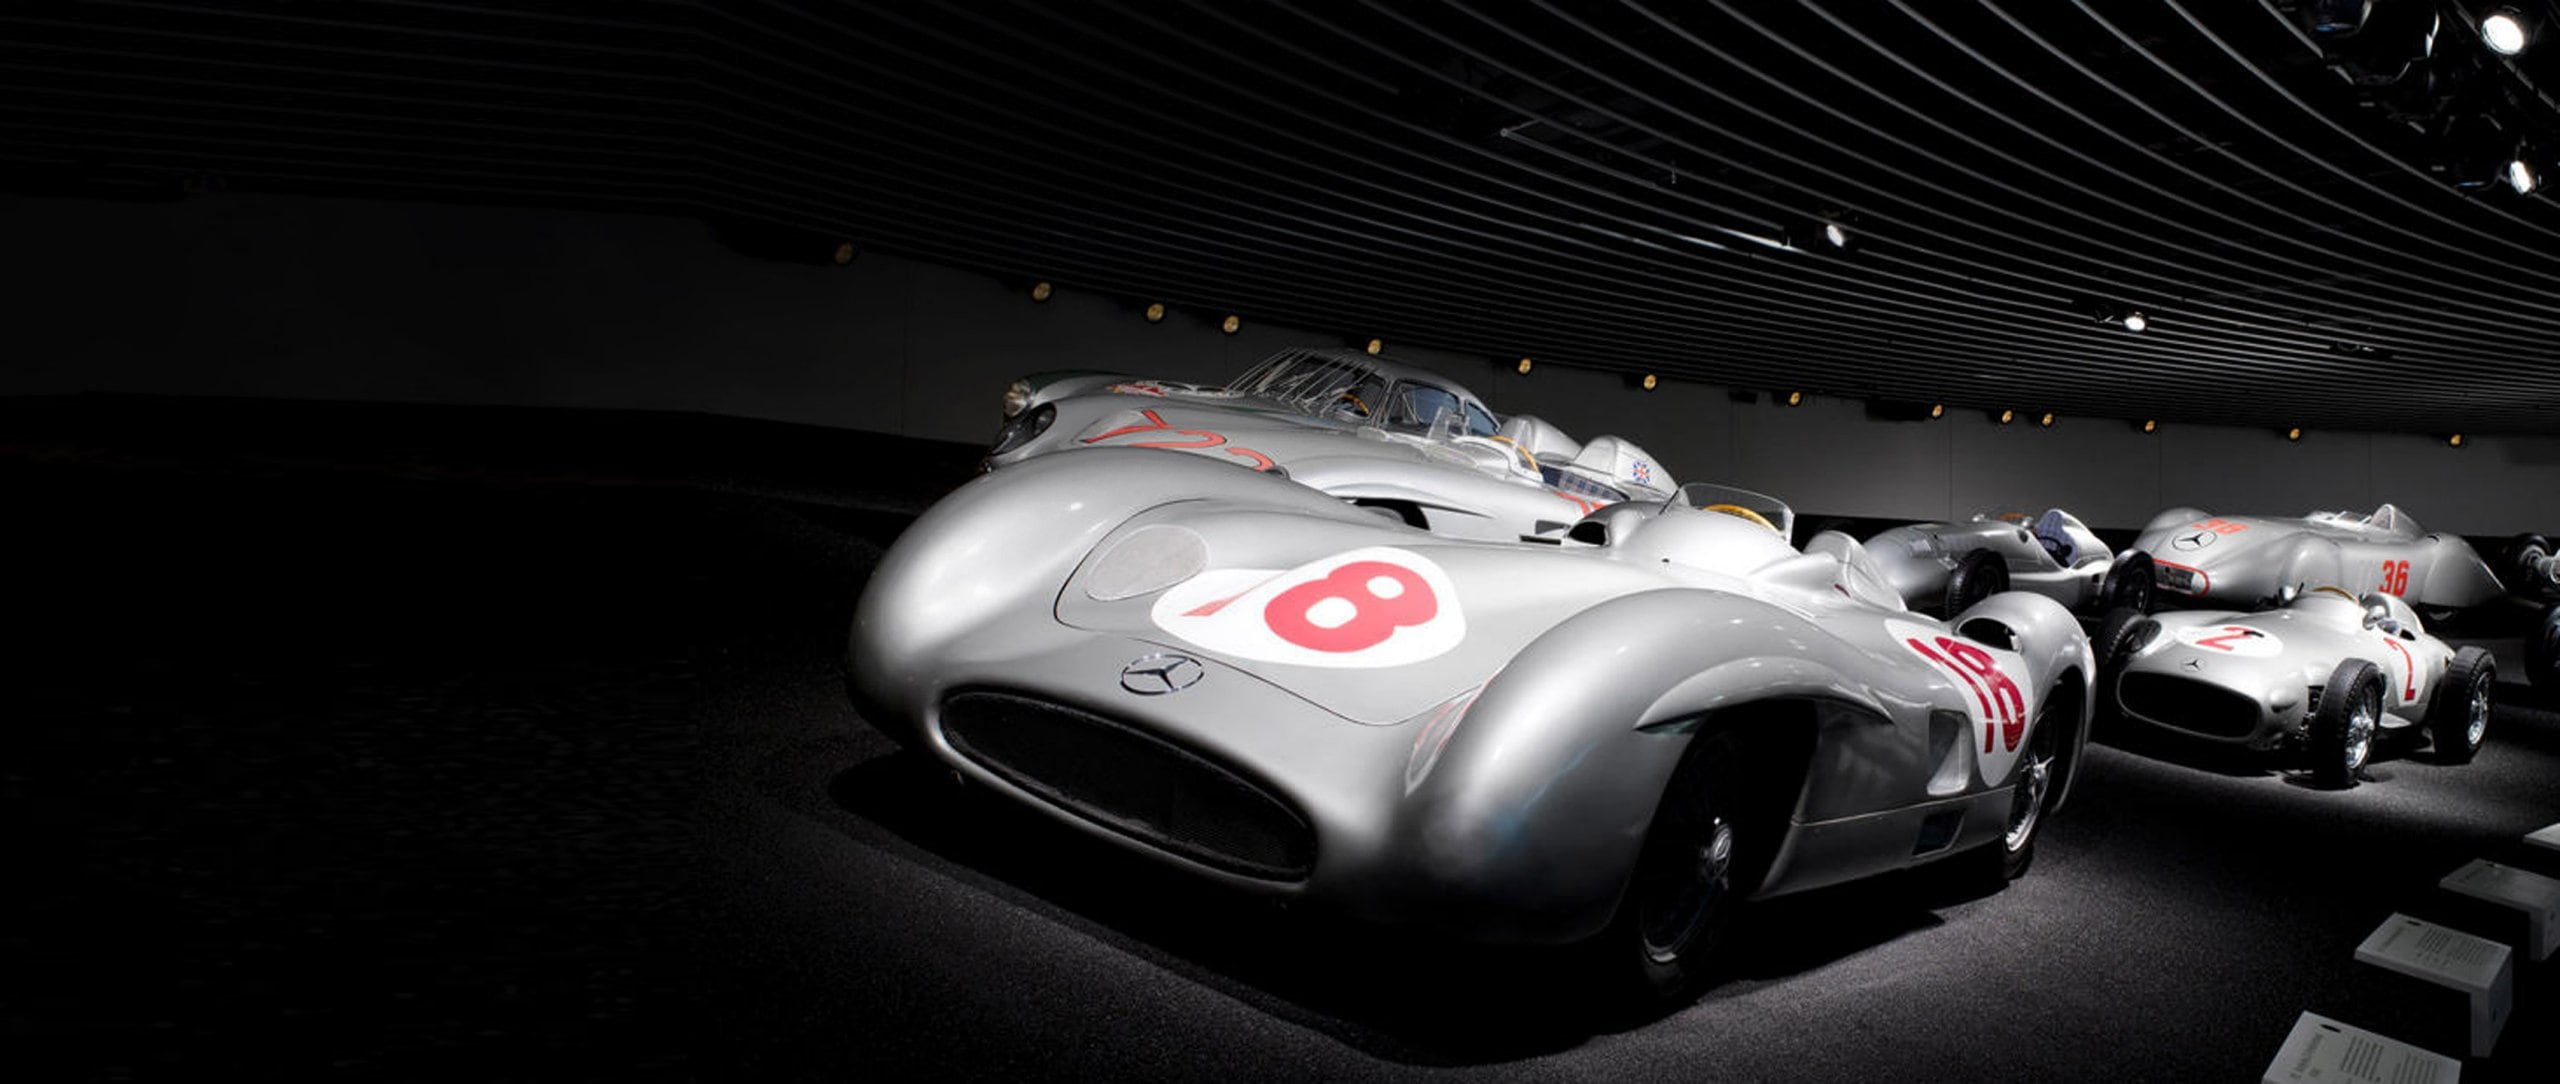 Mercedes-Benz W 196 R 2.5-liter streamlined racing car.